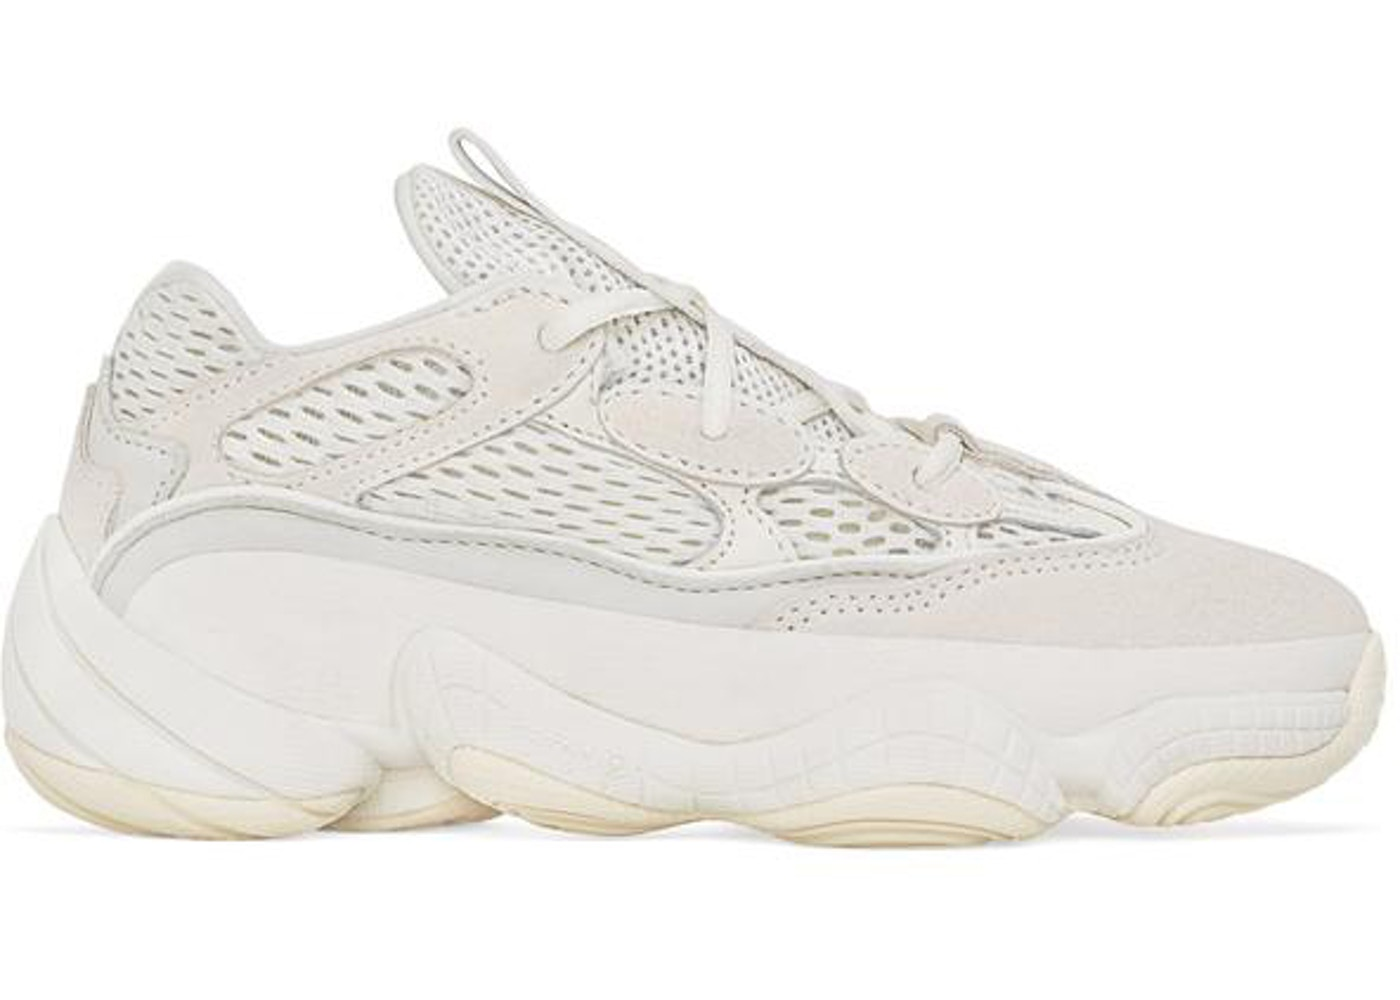 best sneakers a288c 4674e adidas Yeezy 500 Shoes - Price Premium